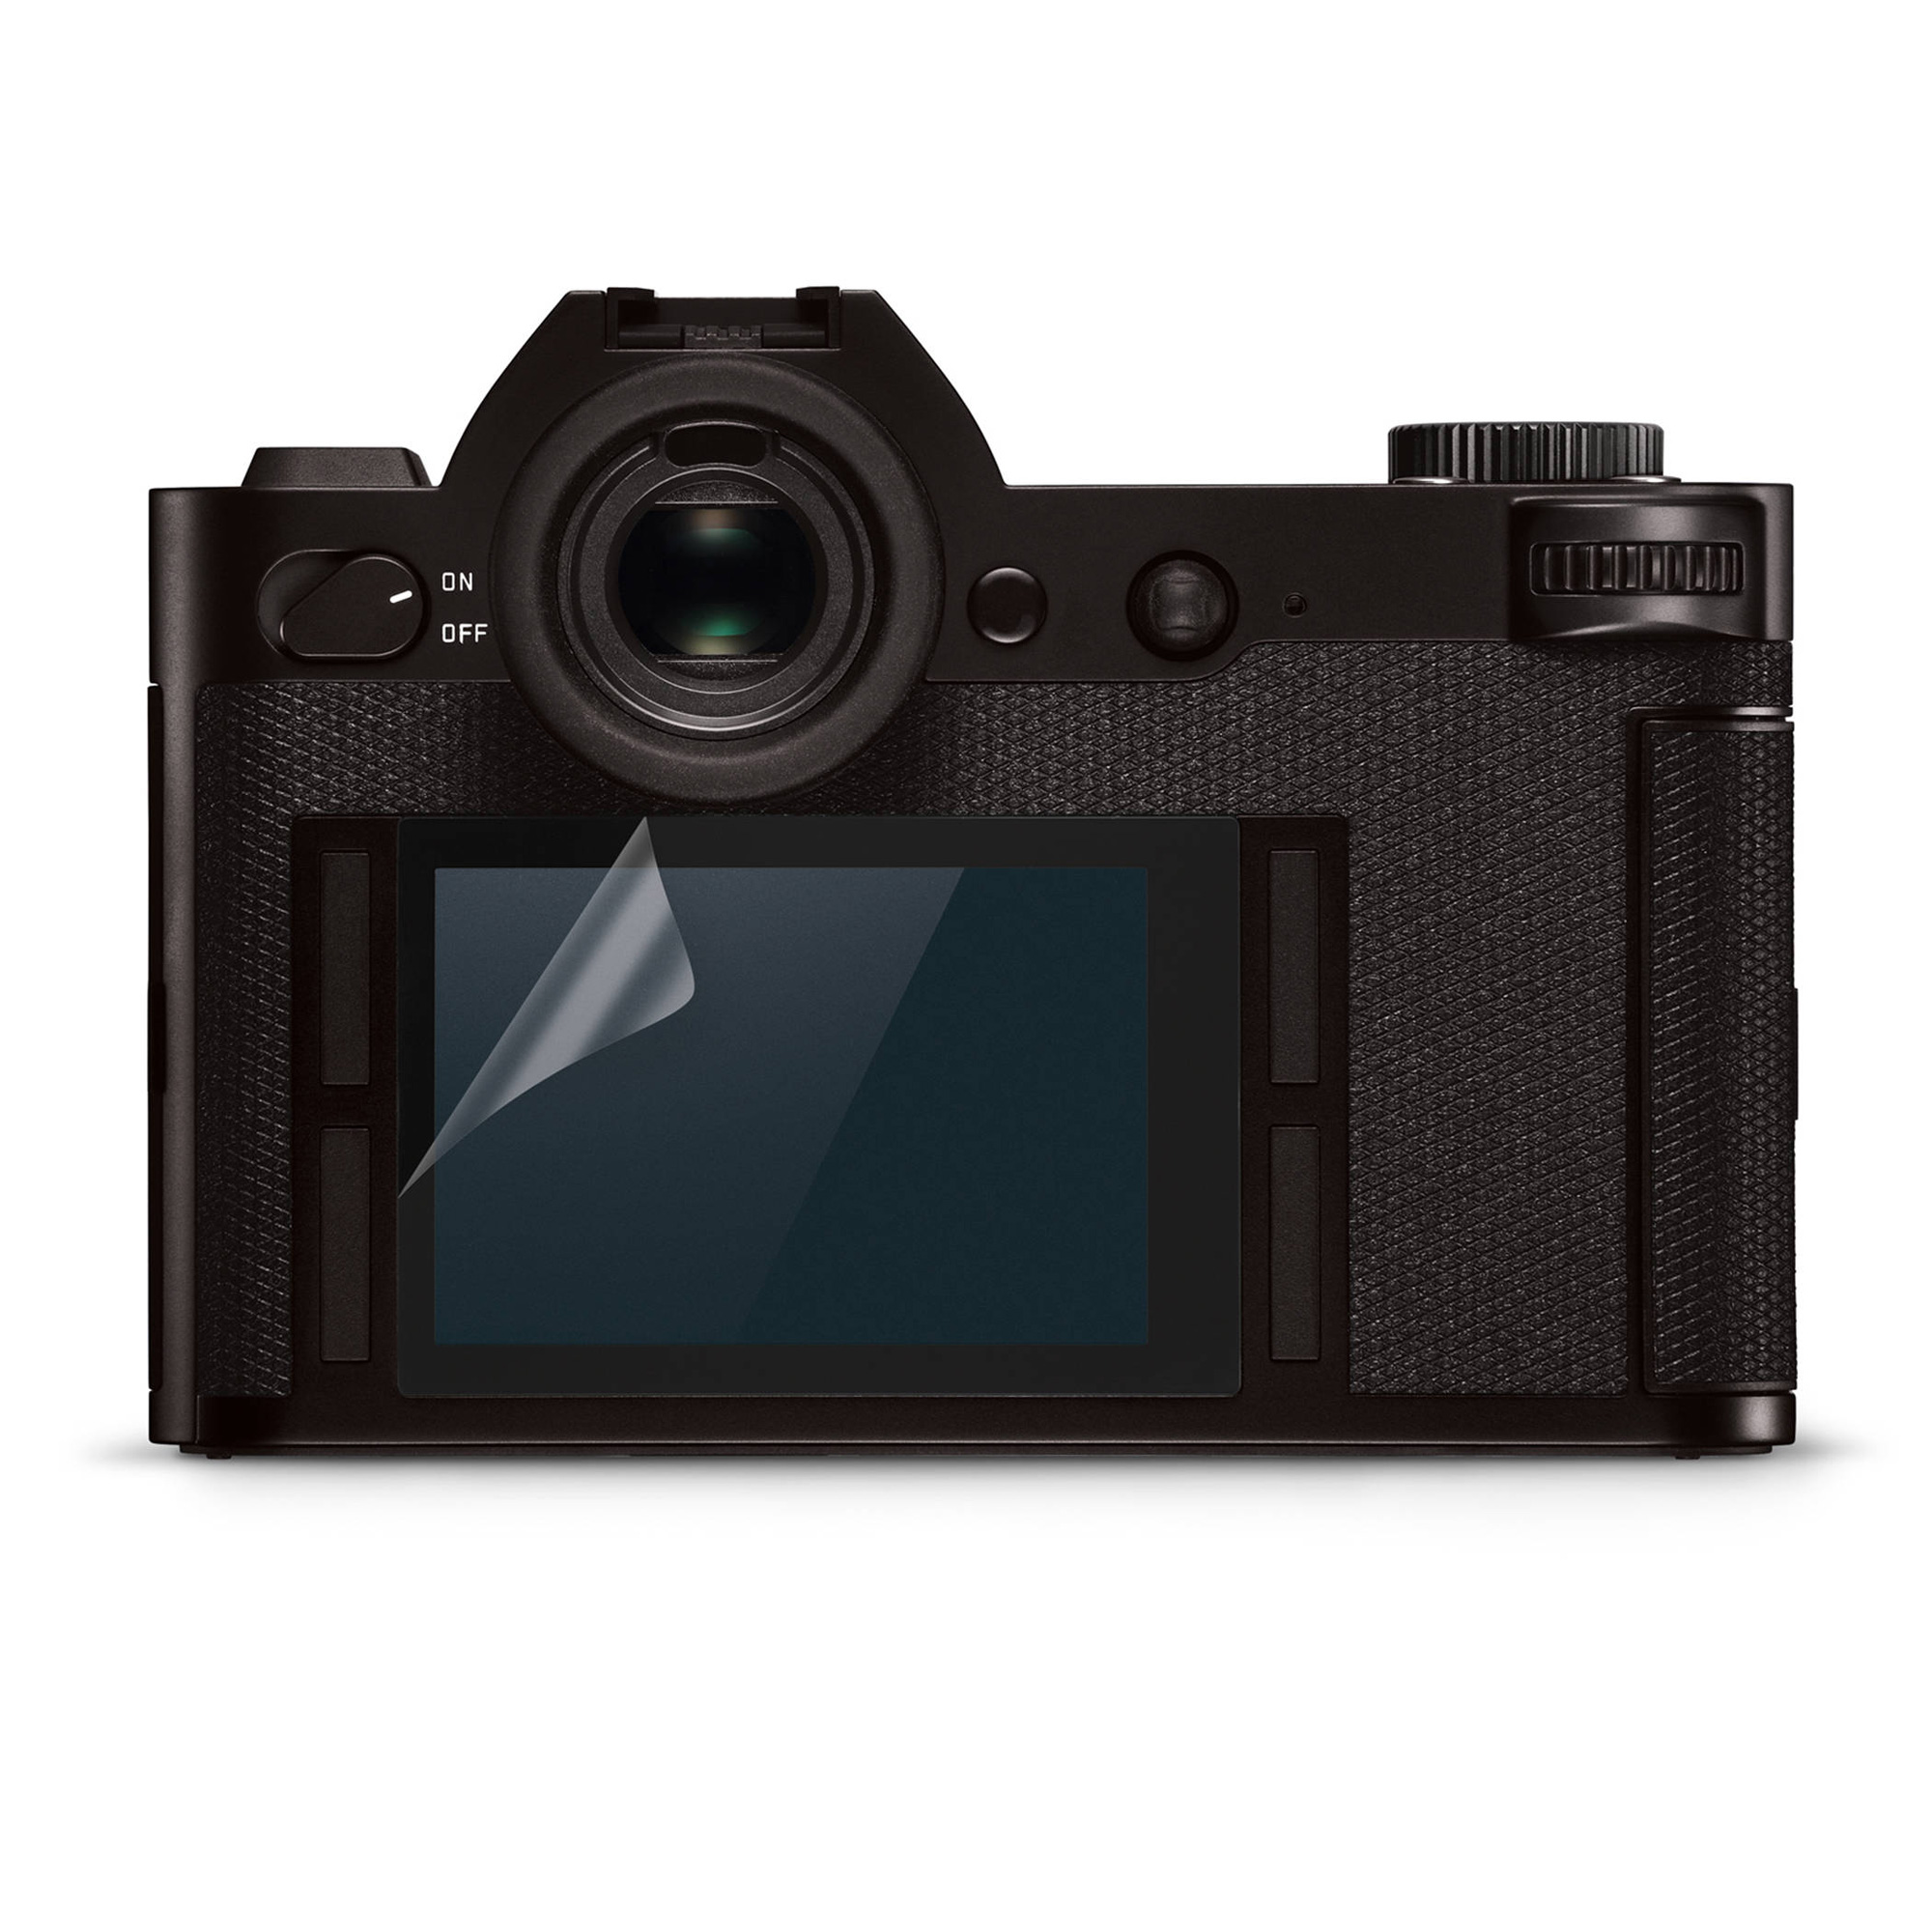 Image of Leica Display Protection Foil for SL Mirrorless Digital Camera